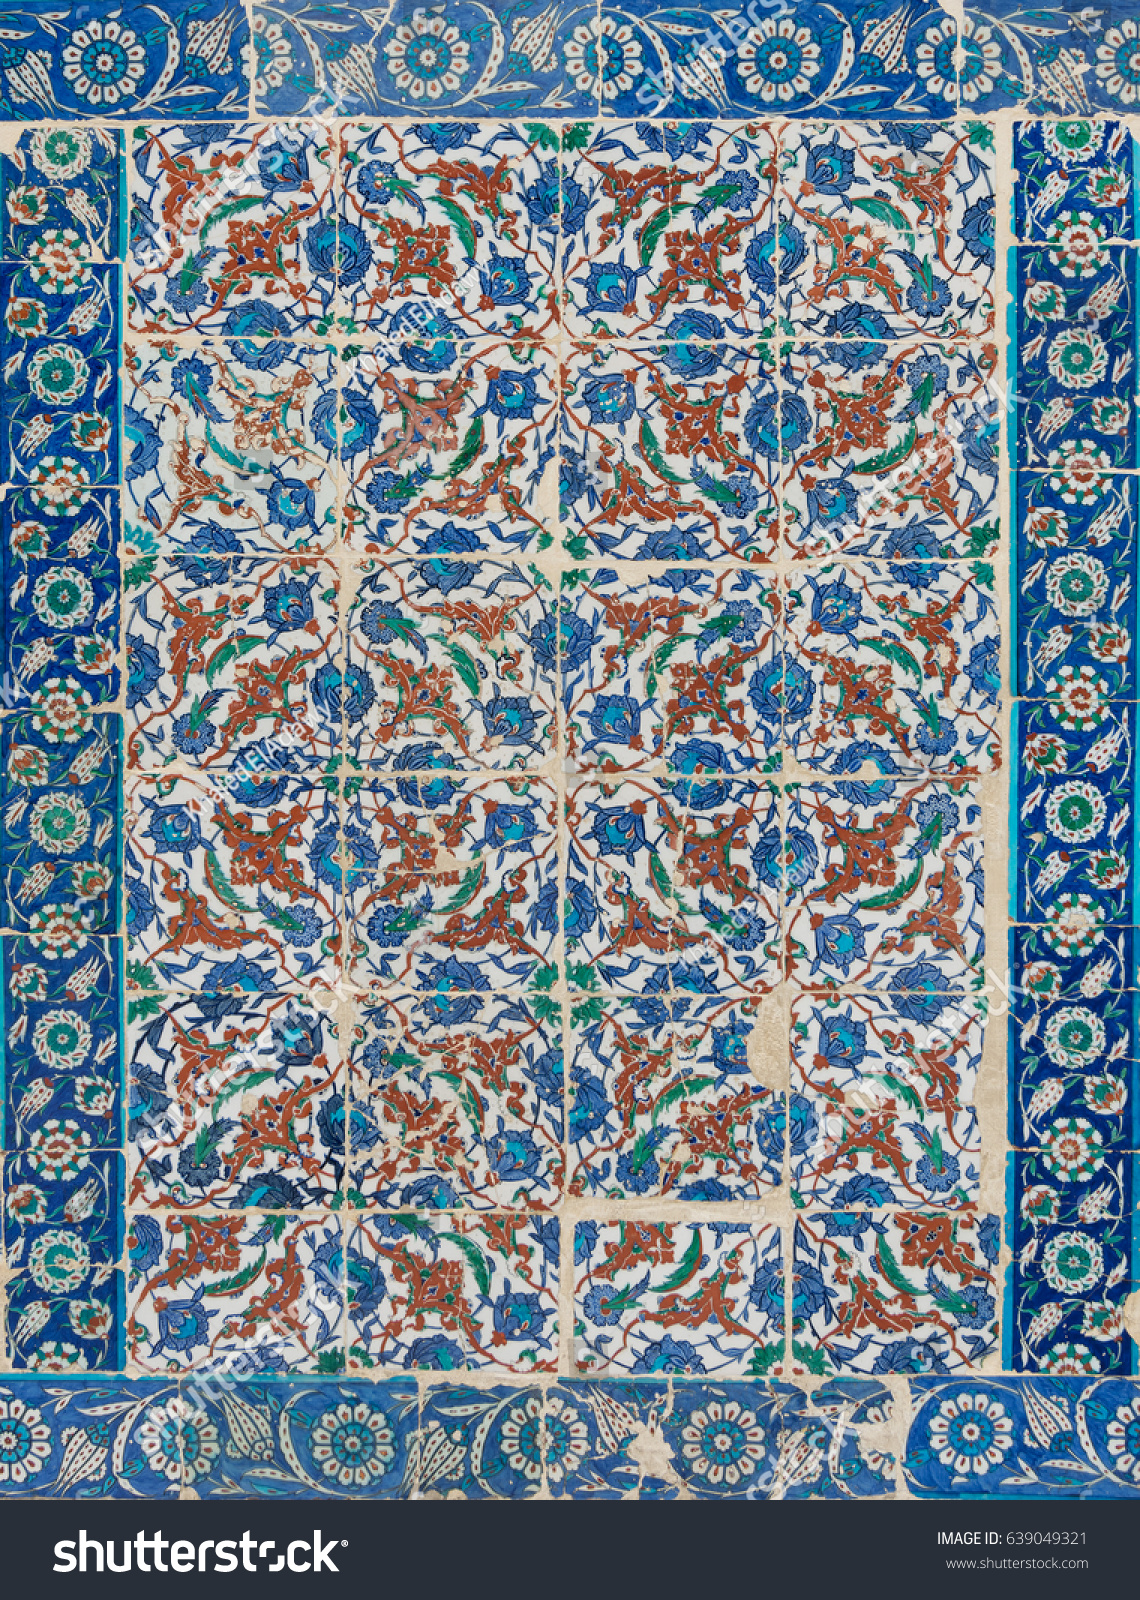 Istanbul turkey april 24 2017 old stock photo 639049321 shutterstock istanbul turkey april 24 2017 old ceramic wall tiles with floral blue doublecrazyfo Image collections